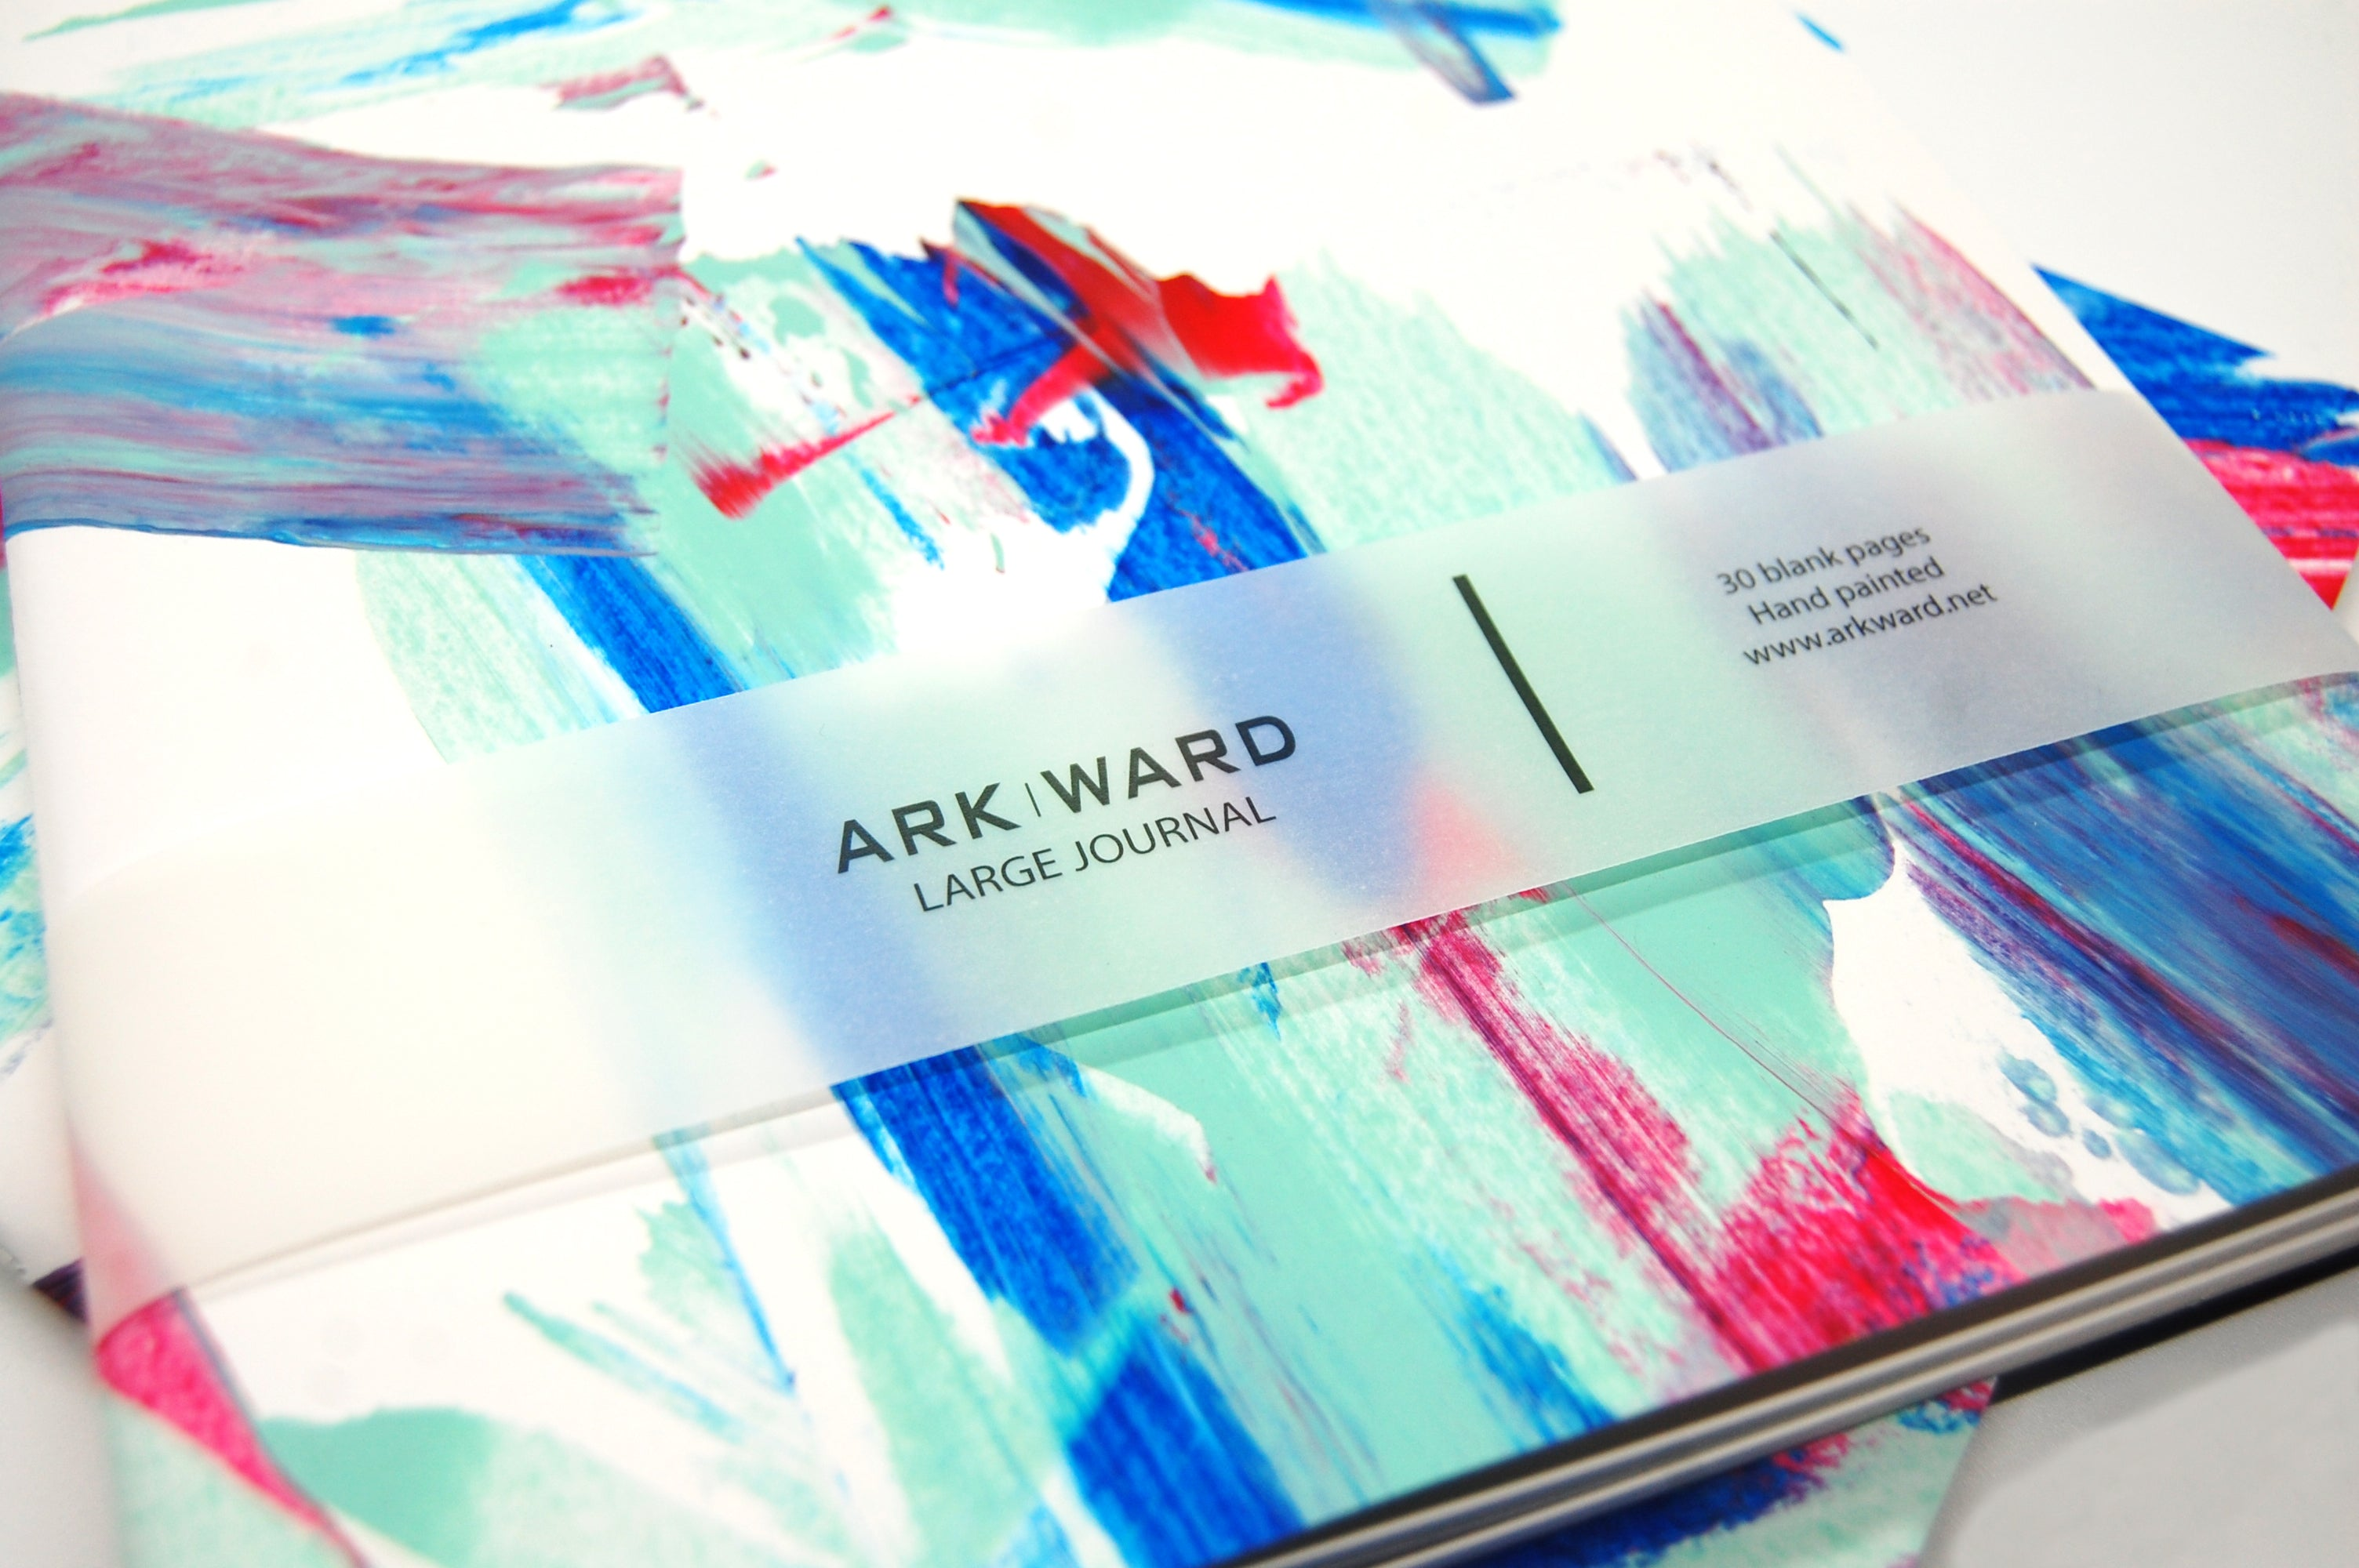 Arkward_Winter Rain_Stationery_Journal